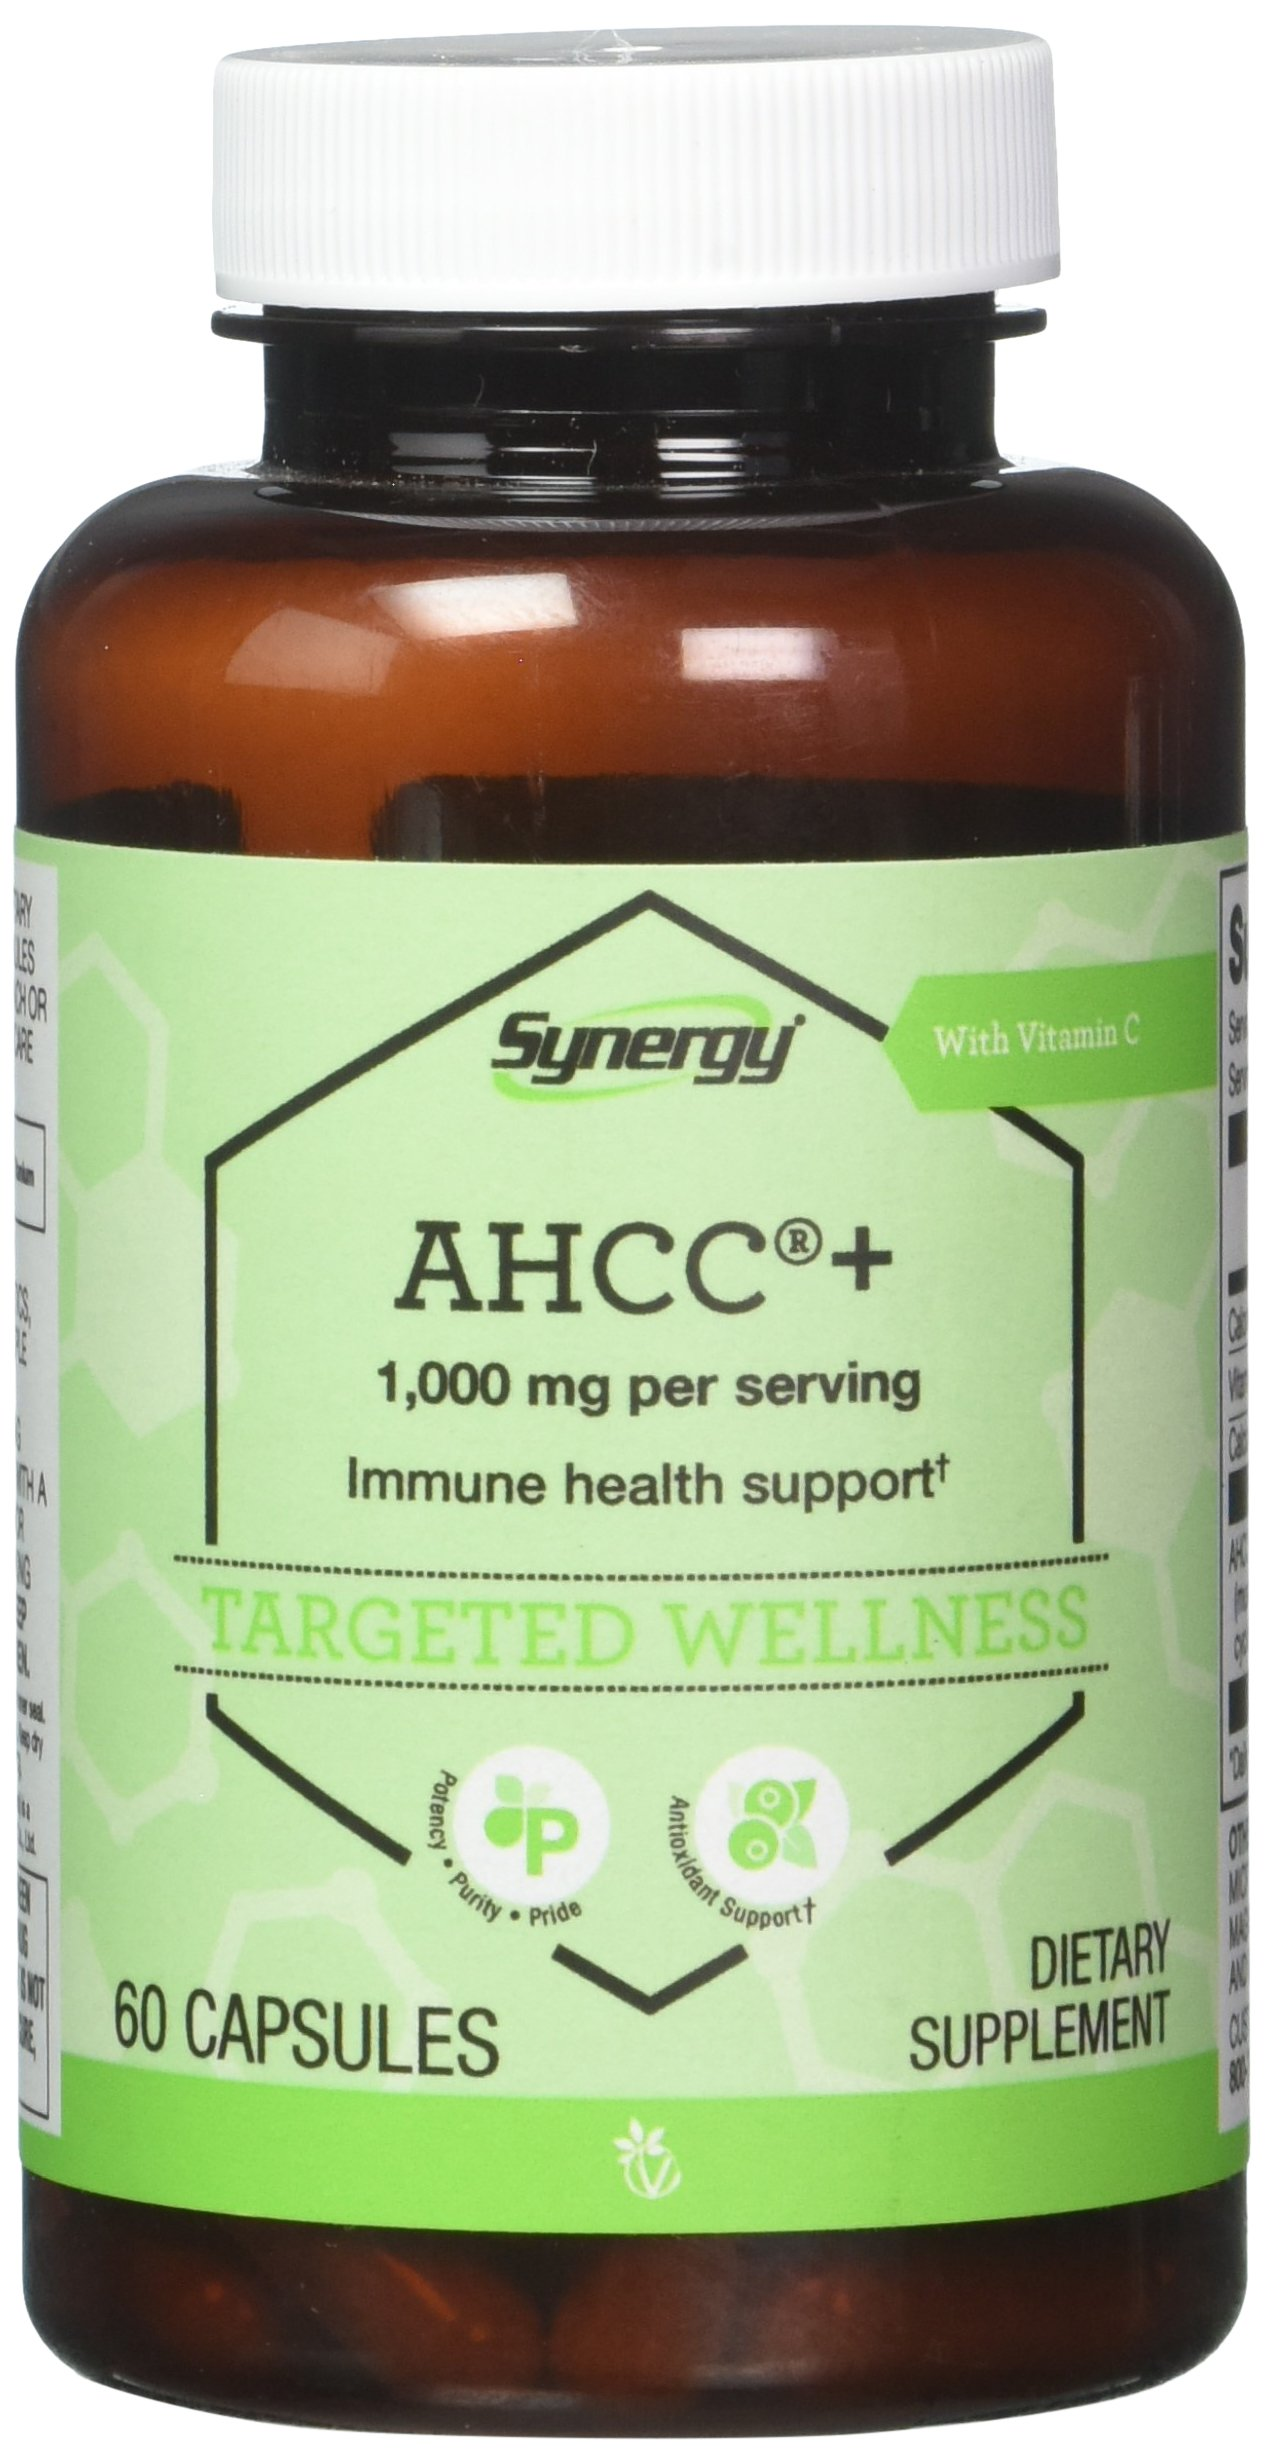 Vitacost Synergy AHCC® + with Vitamin C -- 1000 mg per serving - 60 Capsules